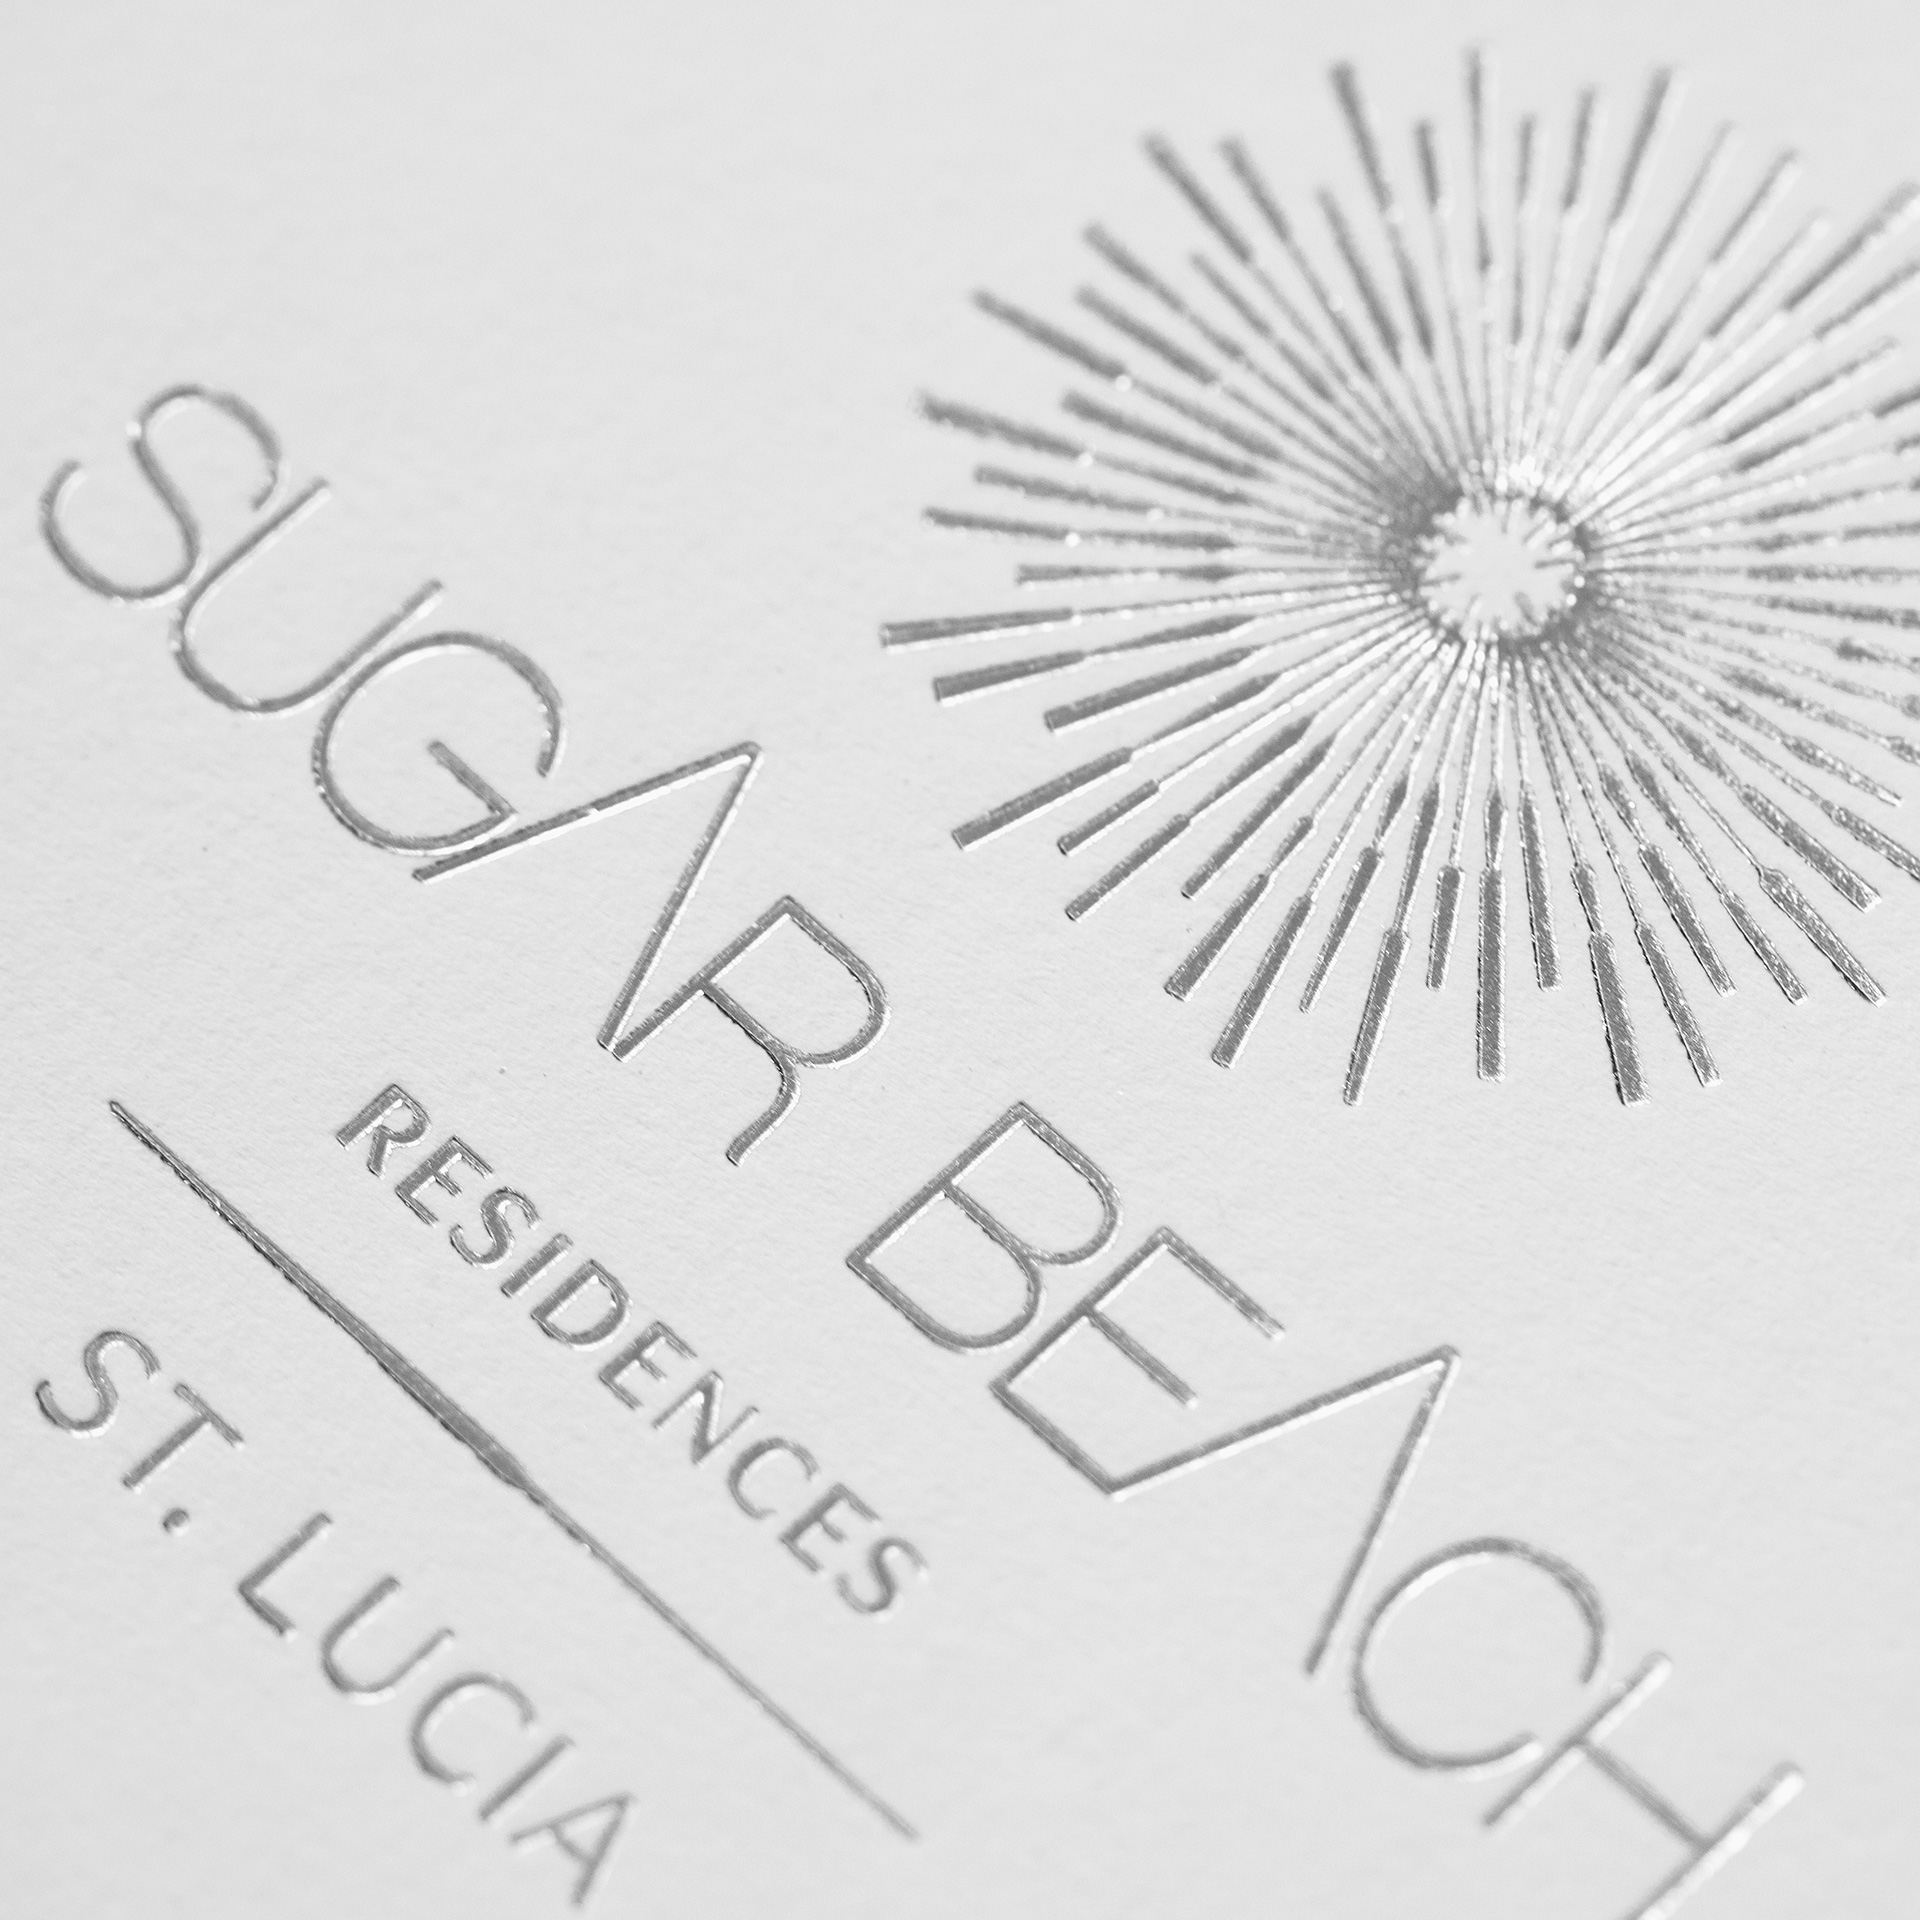 Luxury Real Estate Marketing | Sugar Beach Residences | Foil Logo Words Closeup